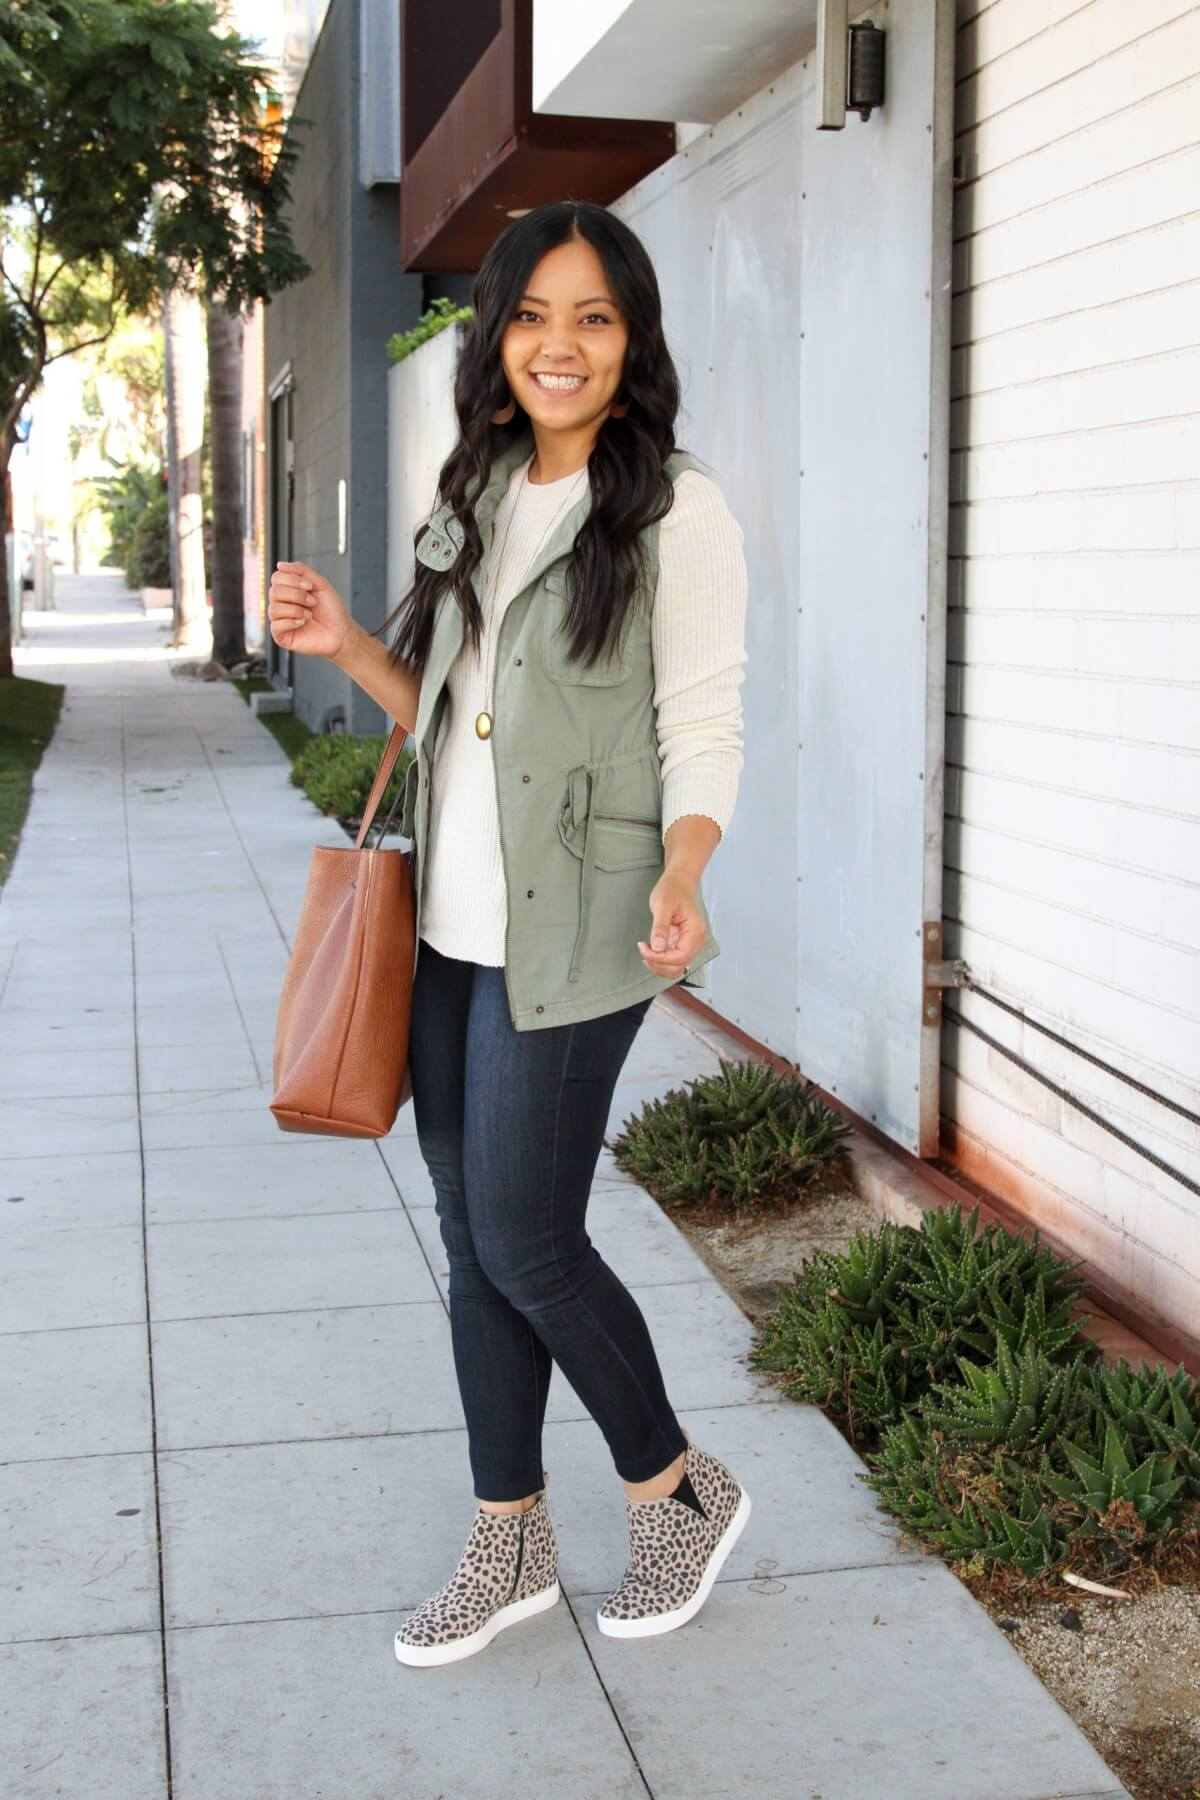 Fall Casual Outfit: cream crewneck sweater + utility vest + leopard wedge sneakers + skinny jeans + long gold circle pendant necklace + tan leather earrings + cognac tote